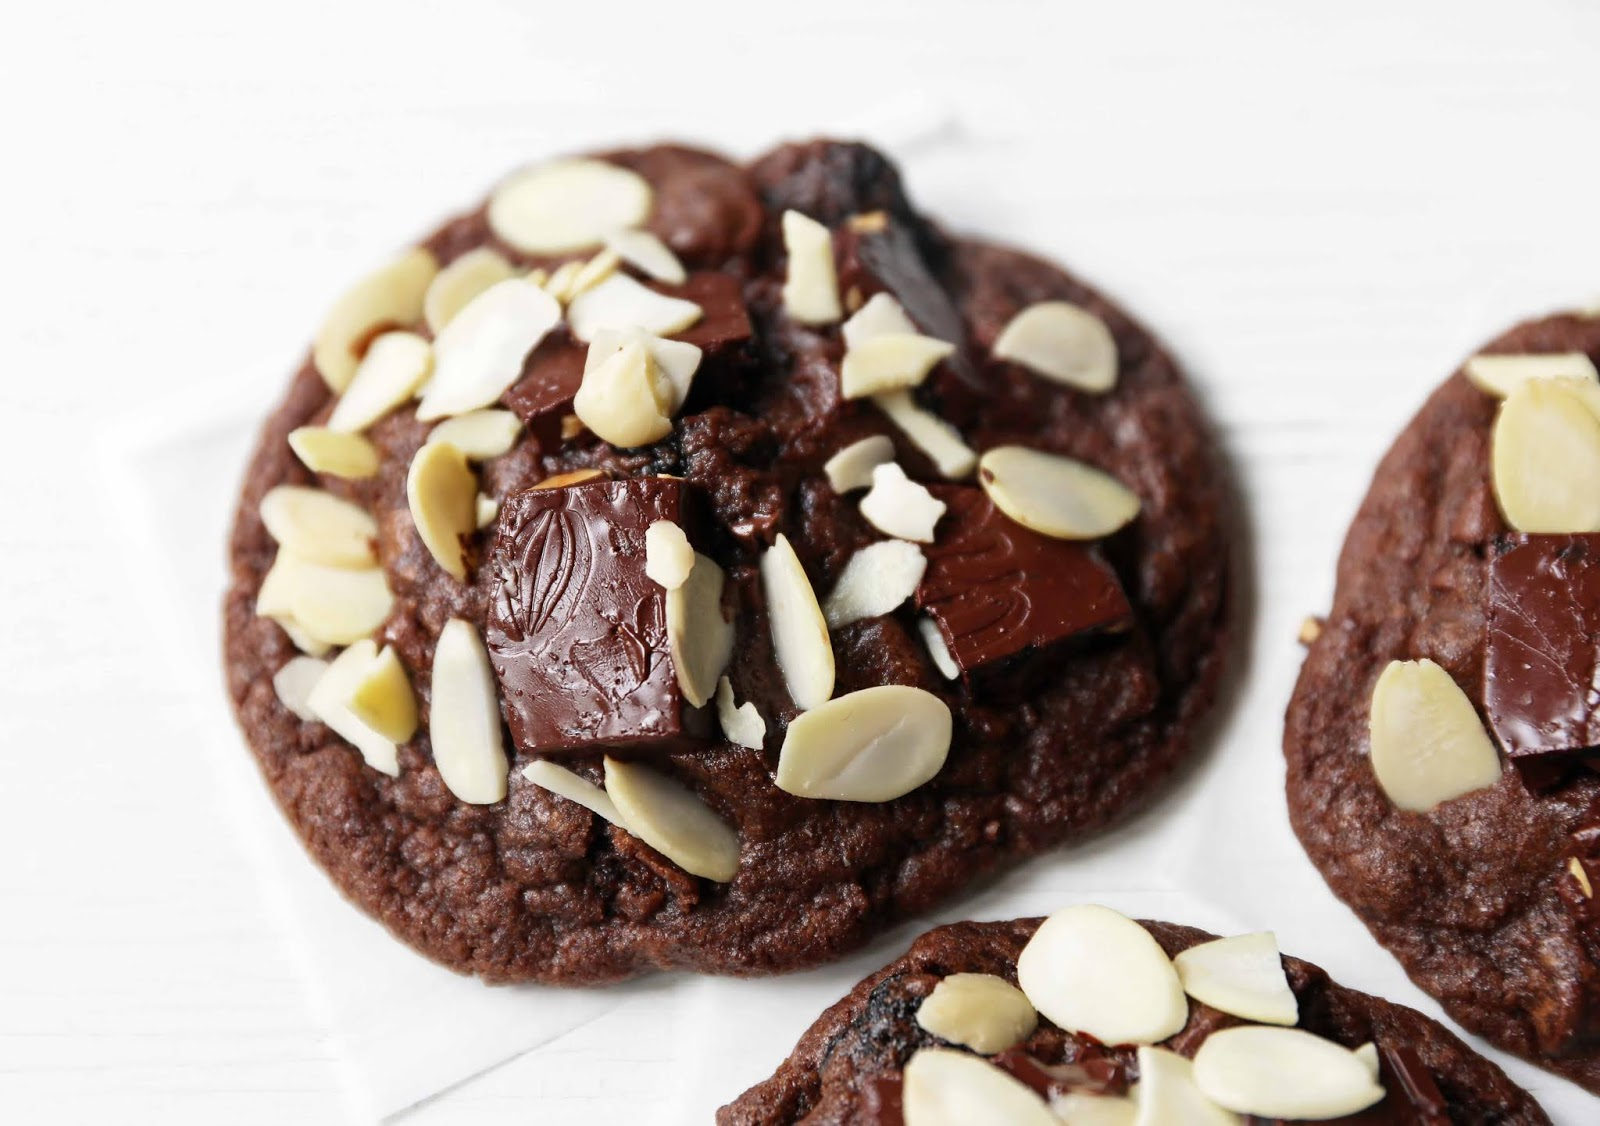 CHOCOLATE CHERRY ALMOND COOKIES RECIPES